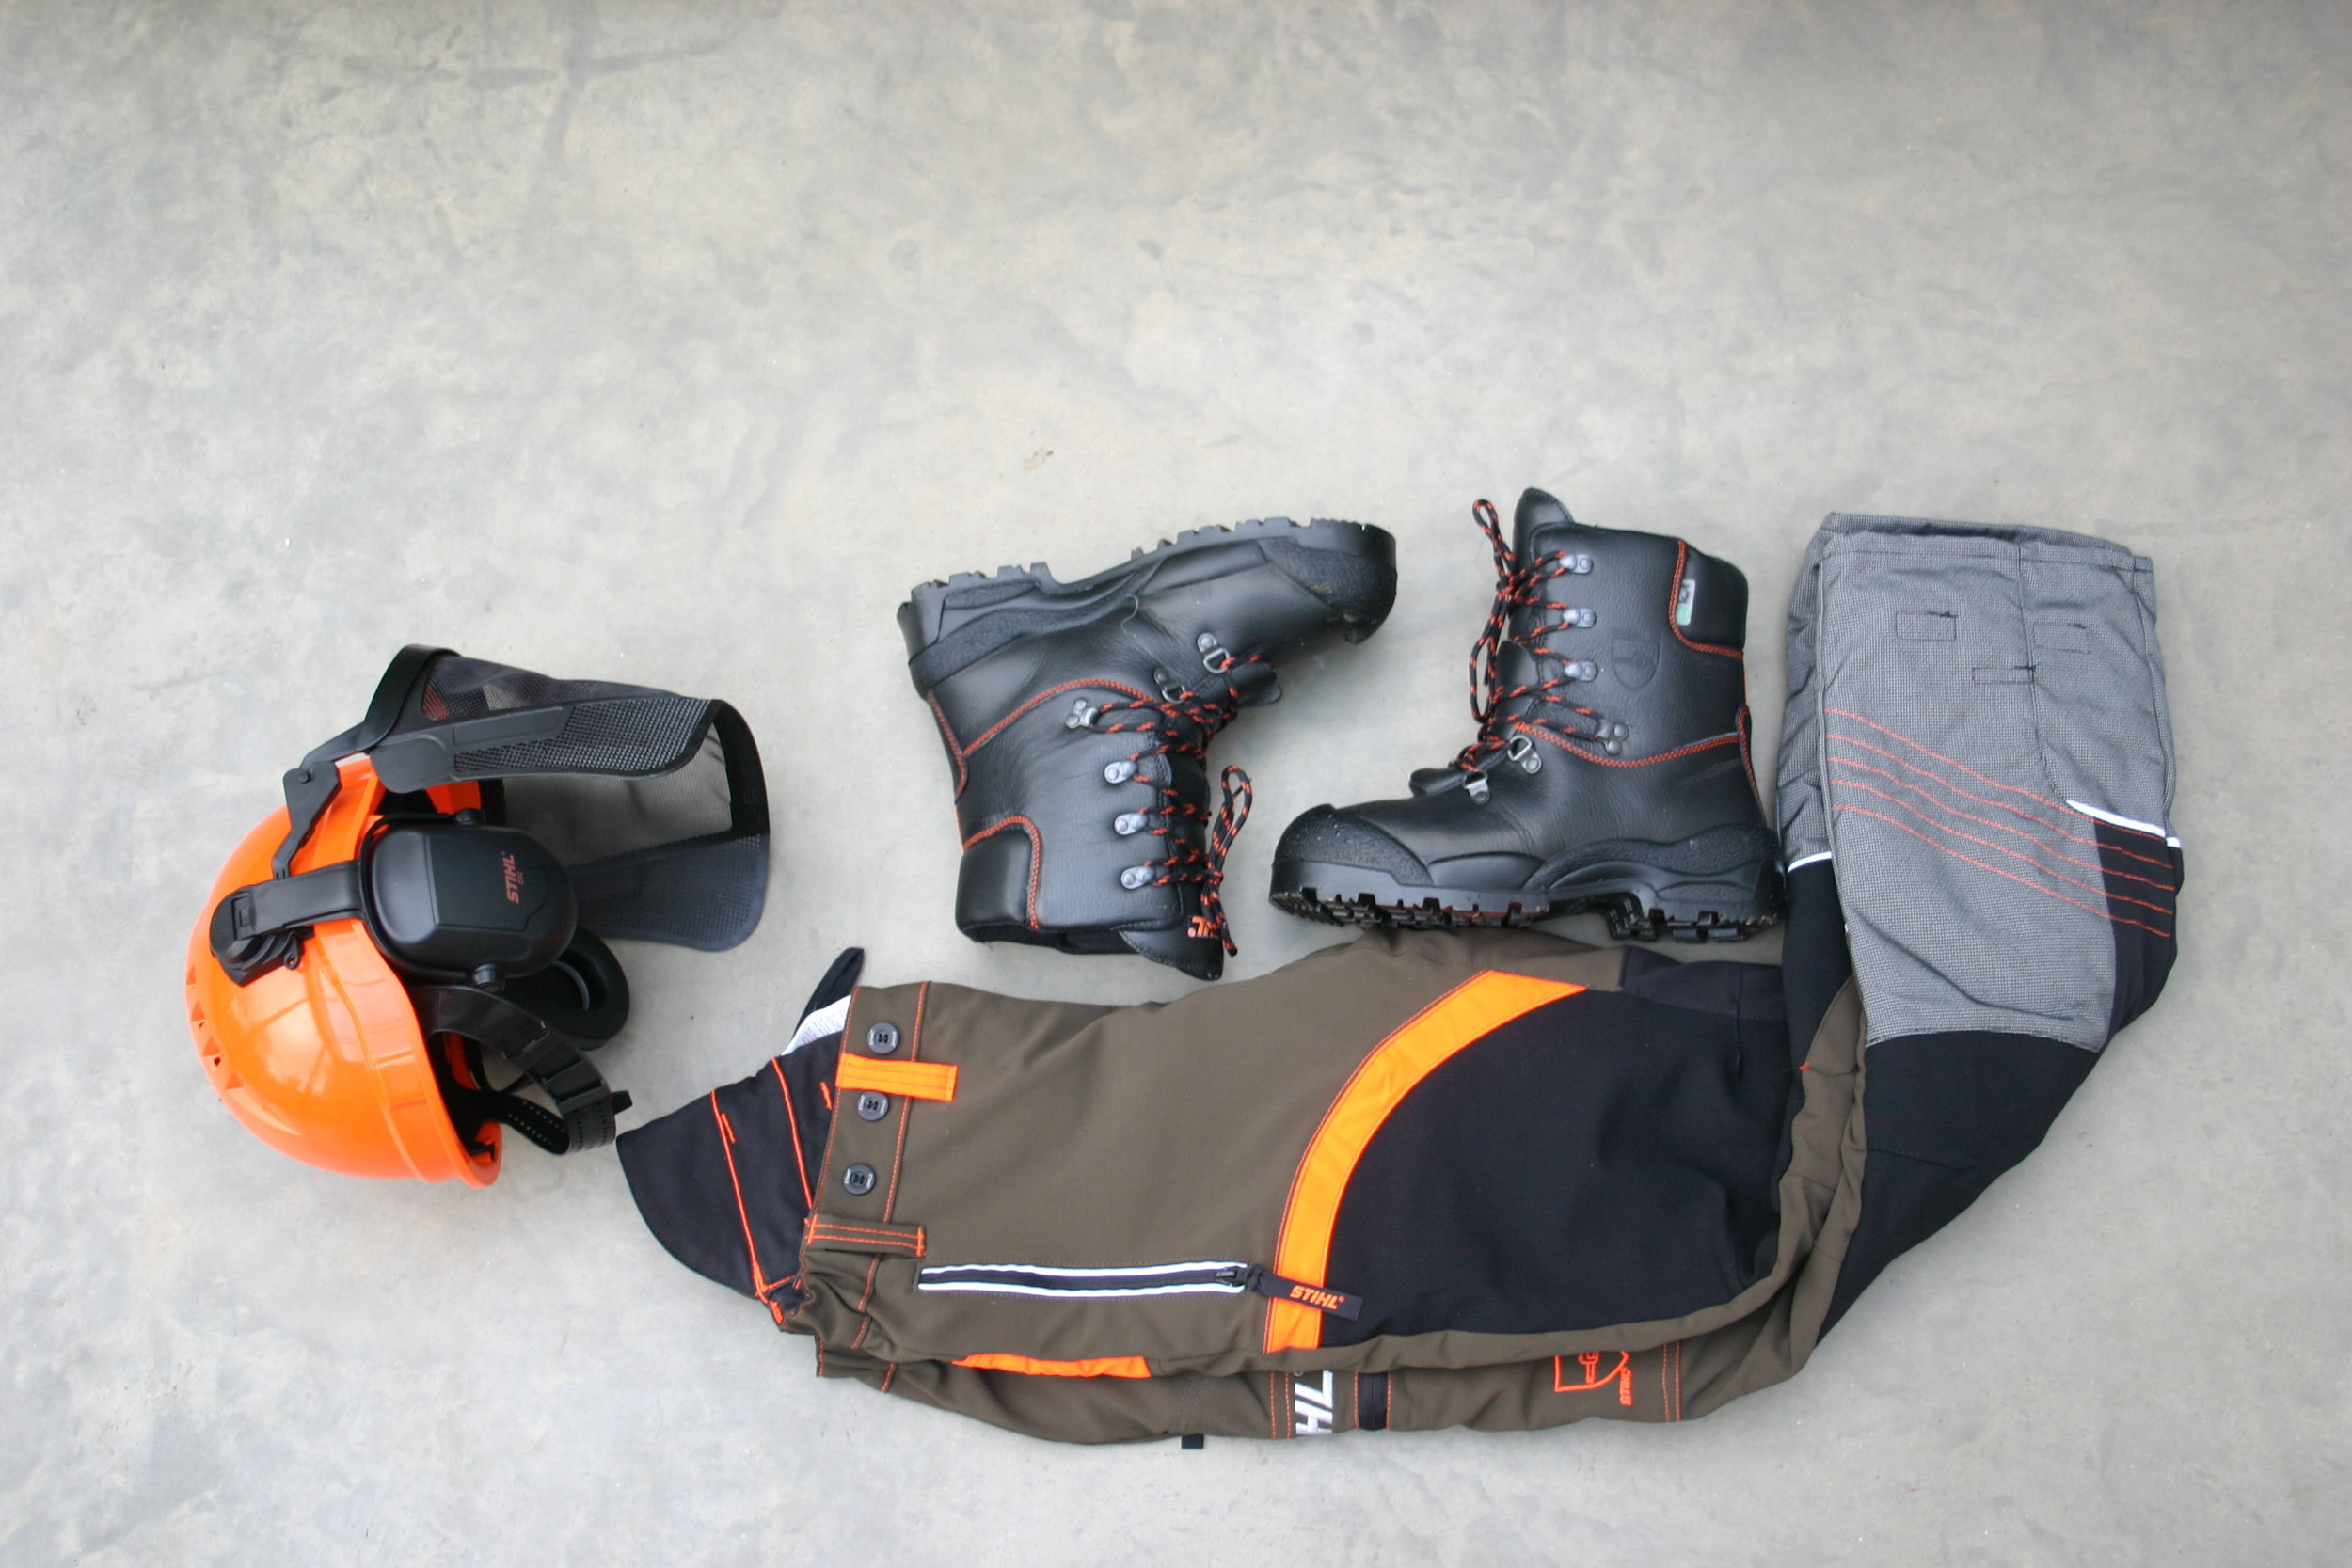 safety kit for chainsawing from Stihl